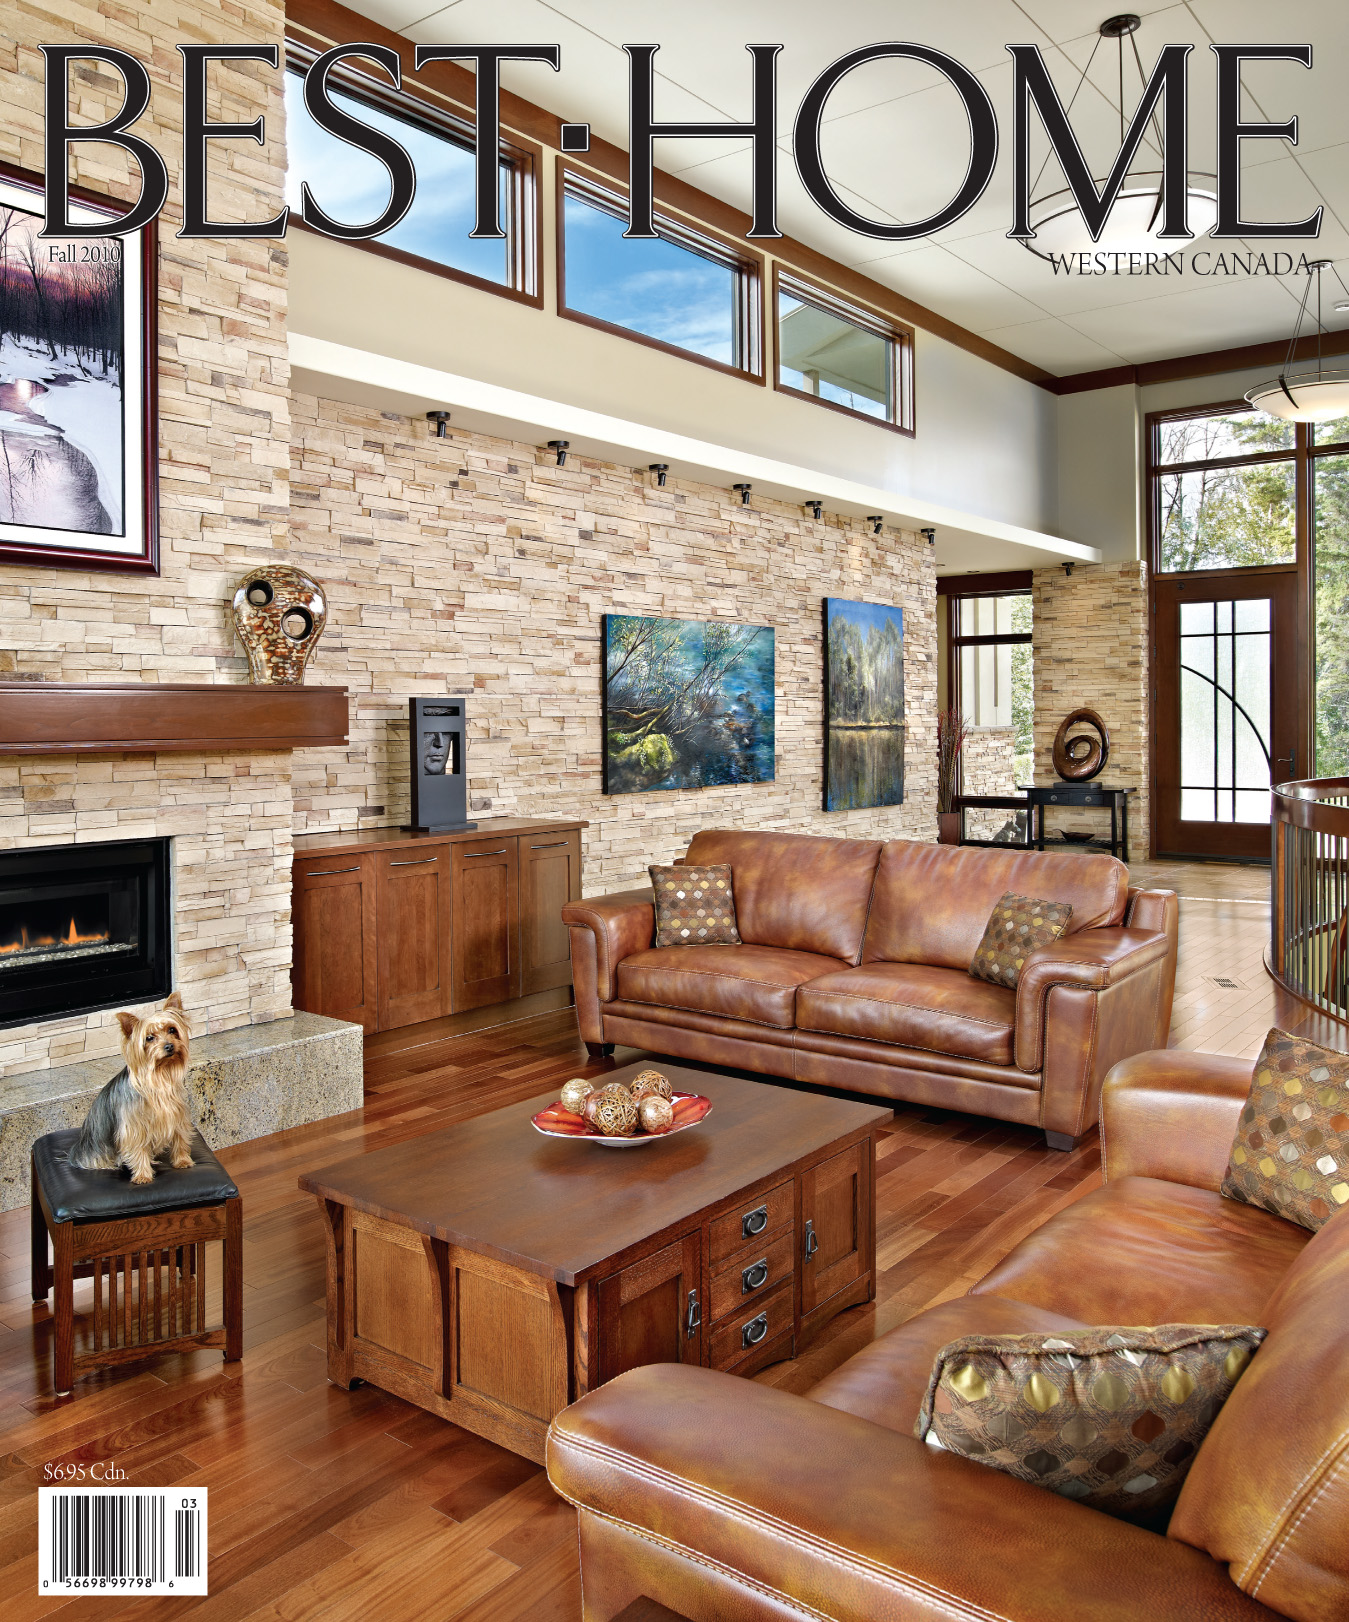 best home magazine fall 2010 stephens fine homes. Black Bedroom Furniture Sets. Home Design Ideas